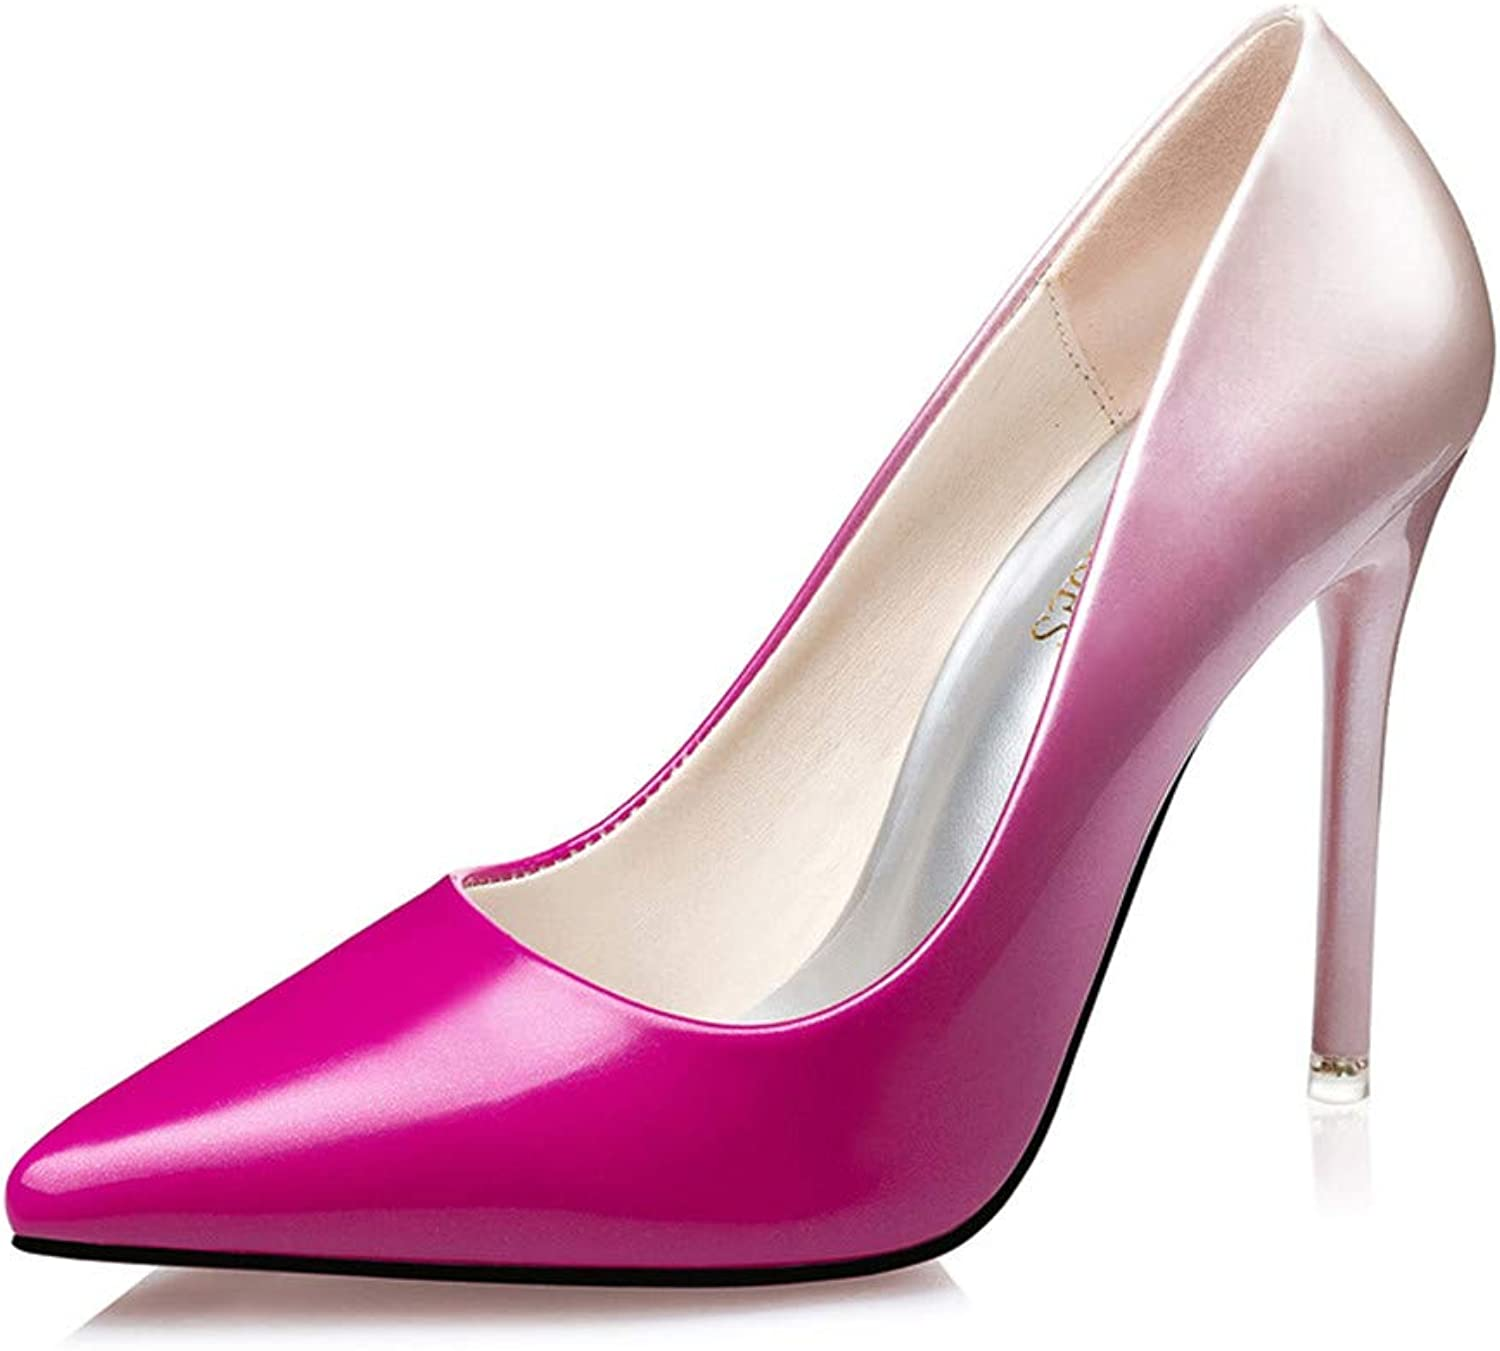 High Heels Women Pumps shoes 10 cm Pointed Toe Stiletto Sexy Prom Club Heels,Pink,38